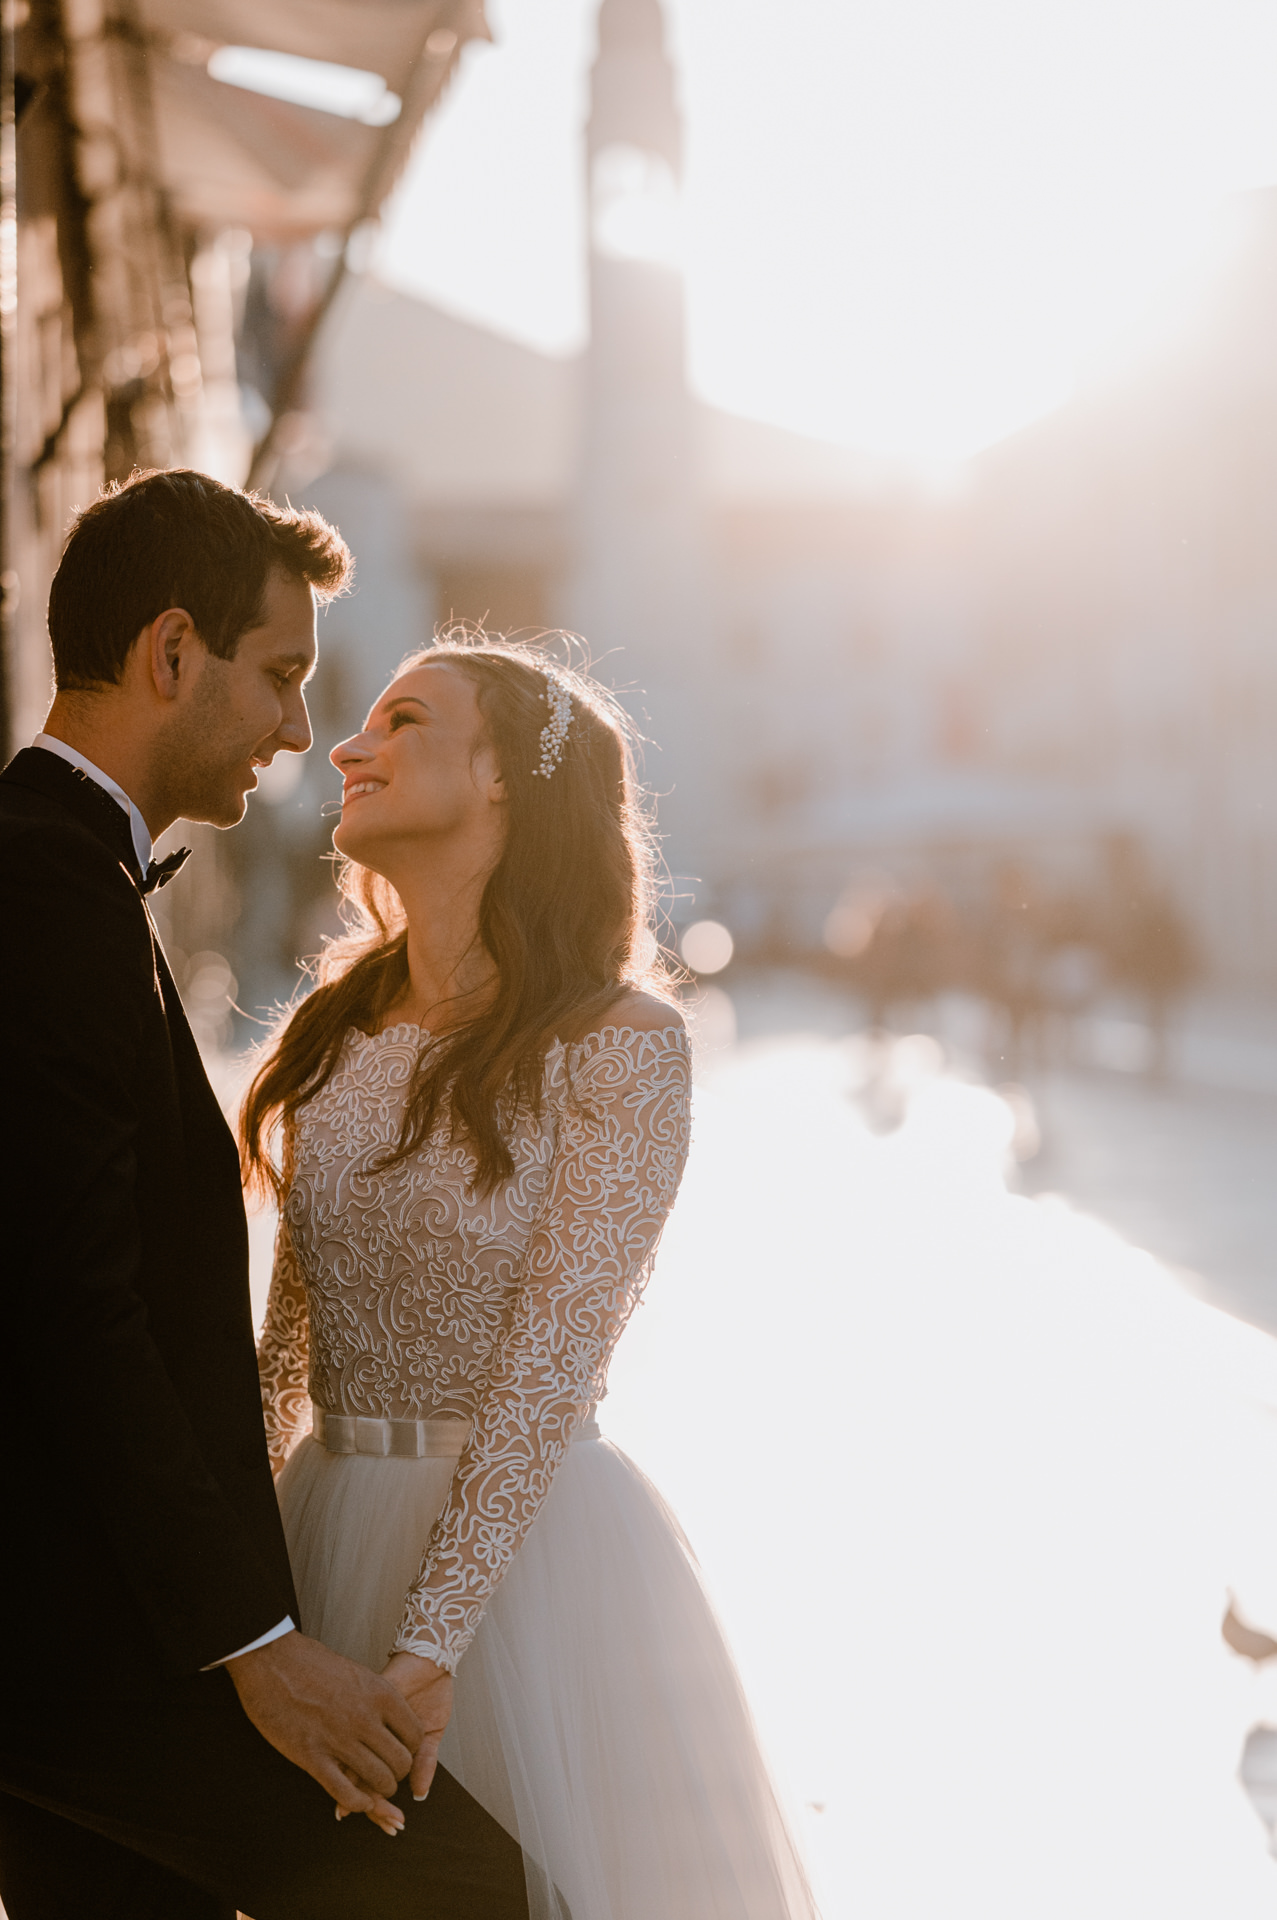 bride and groom smiling at stradun street with sun flare in background